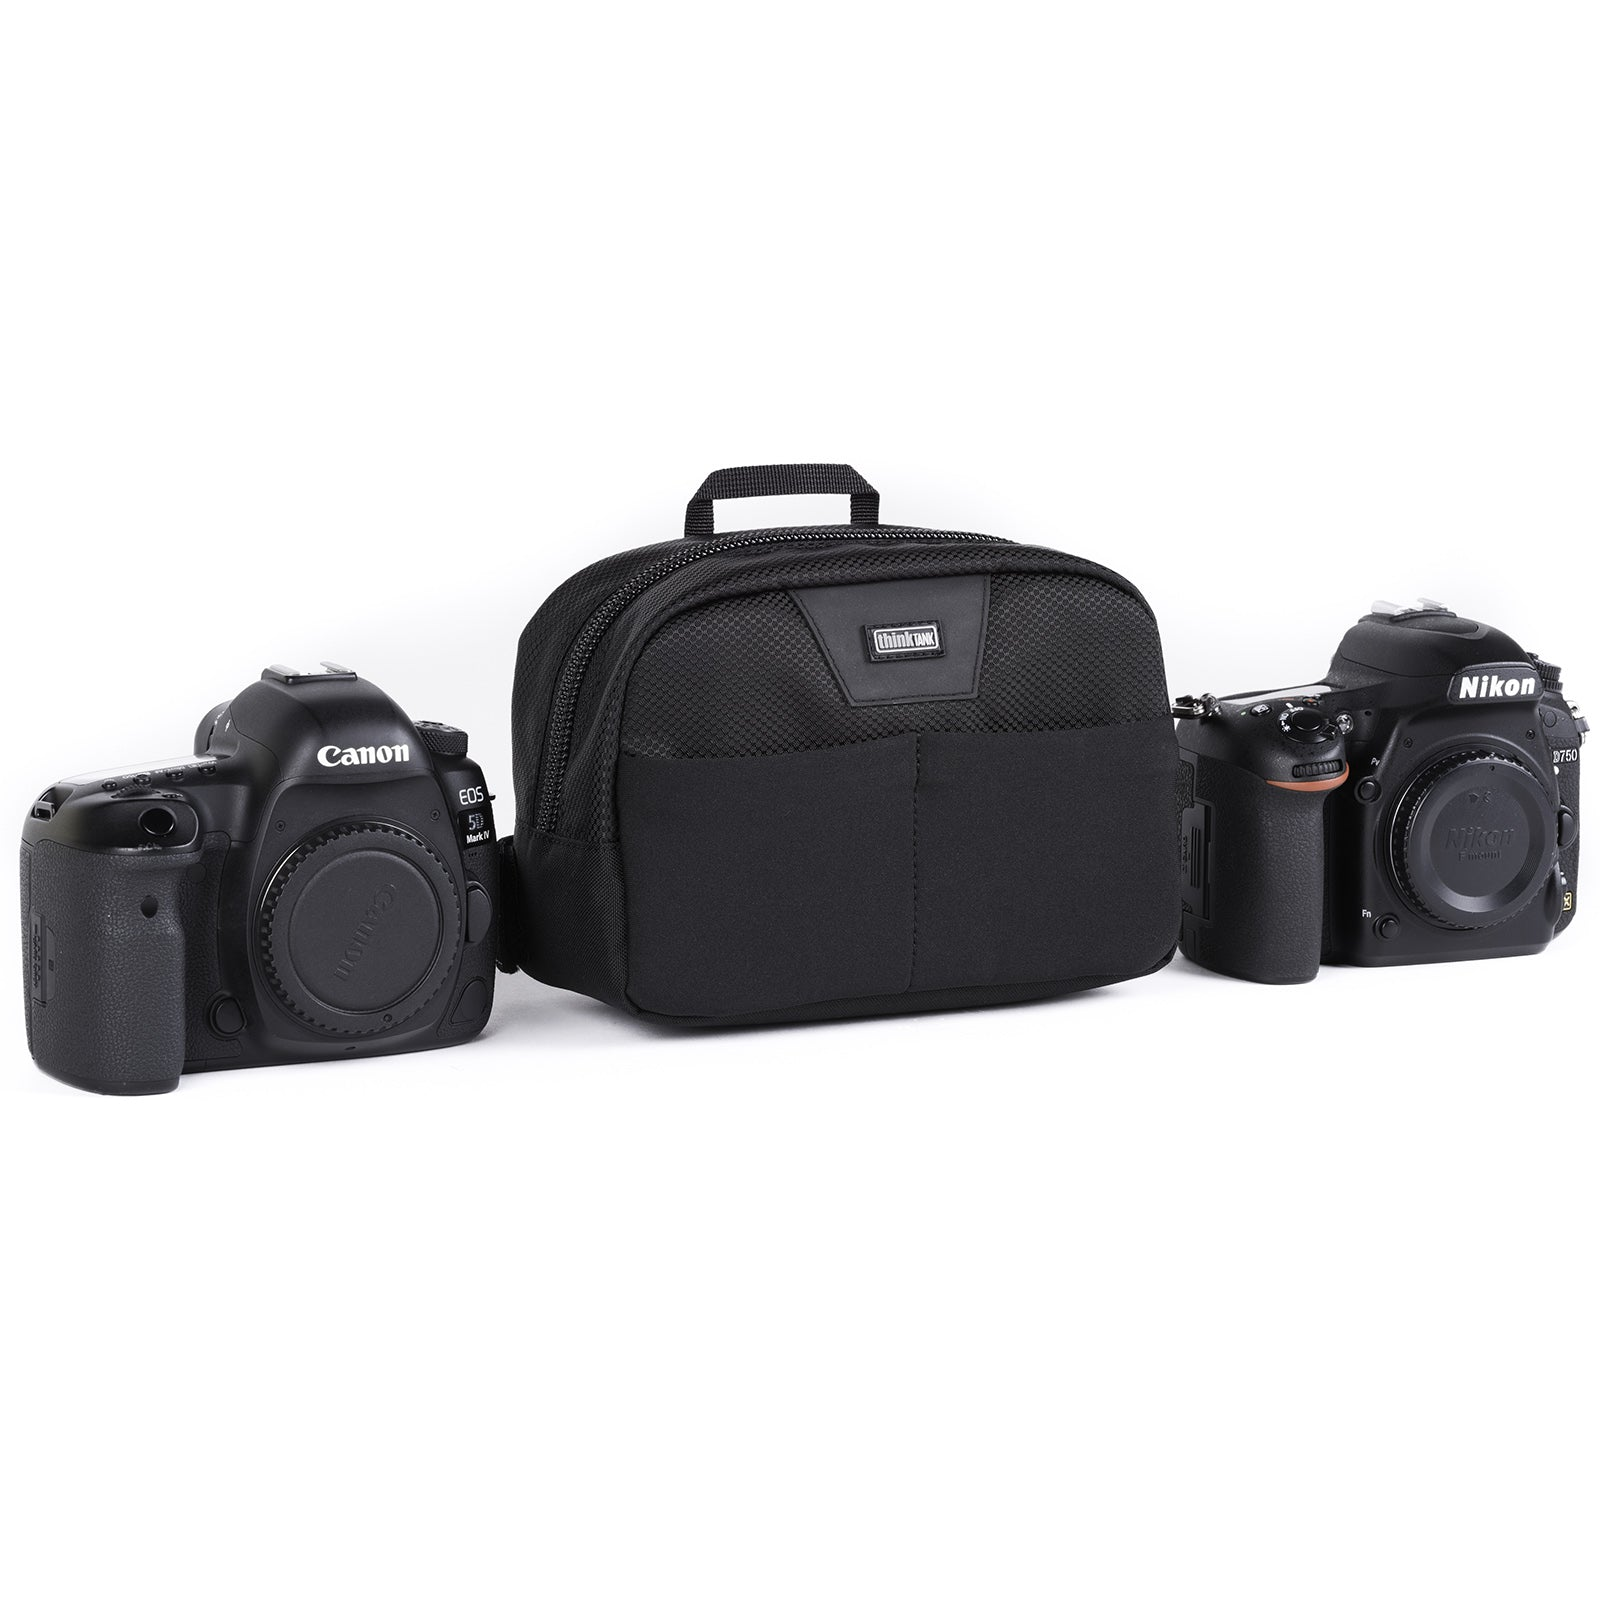 c15cf680e2b Slim organizer belt pouch for small lenses, accessories or an ungripped  DSLR body Magnify